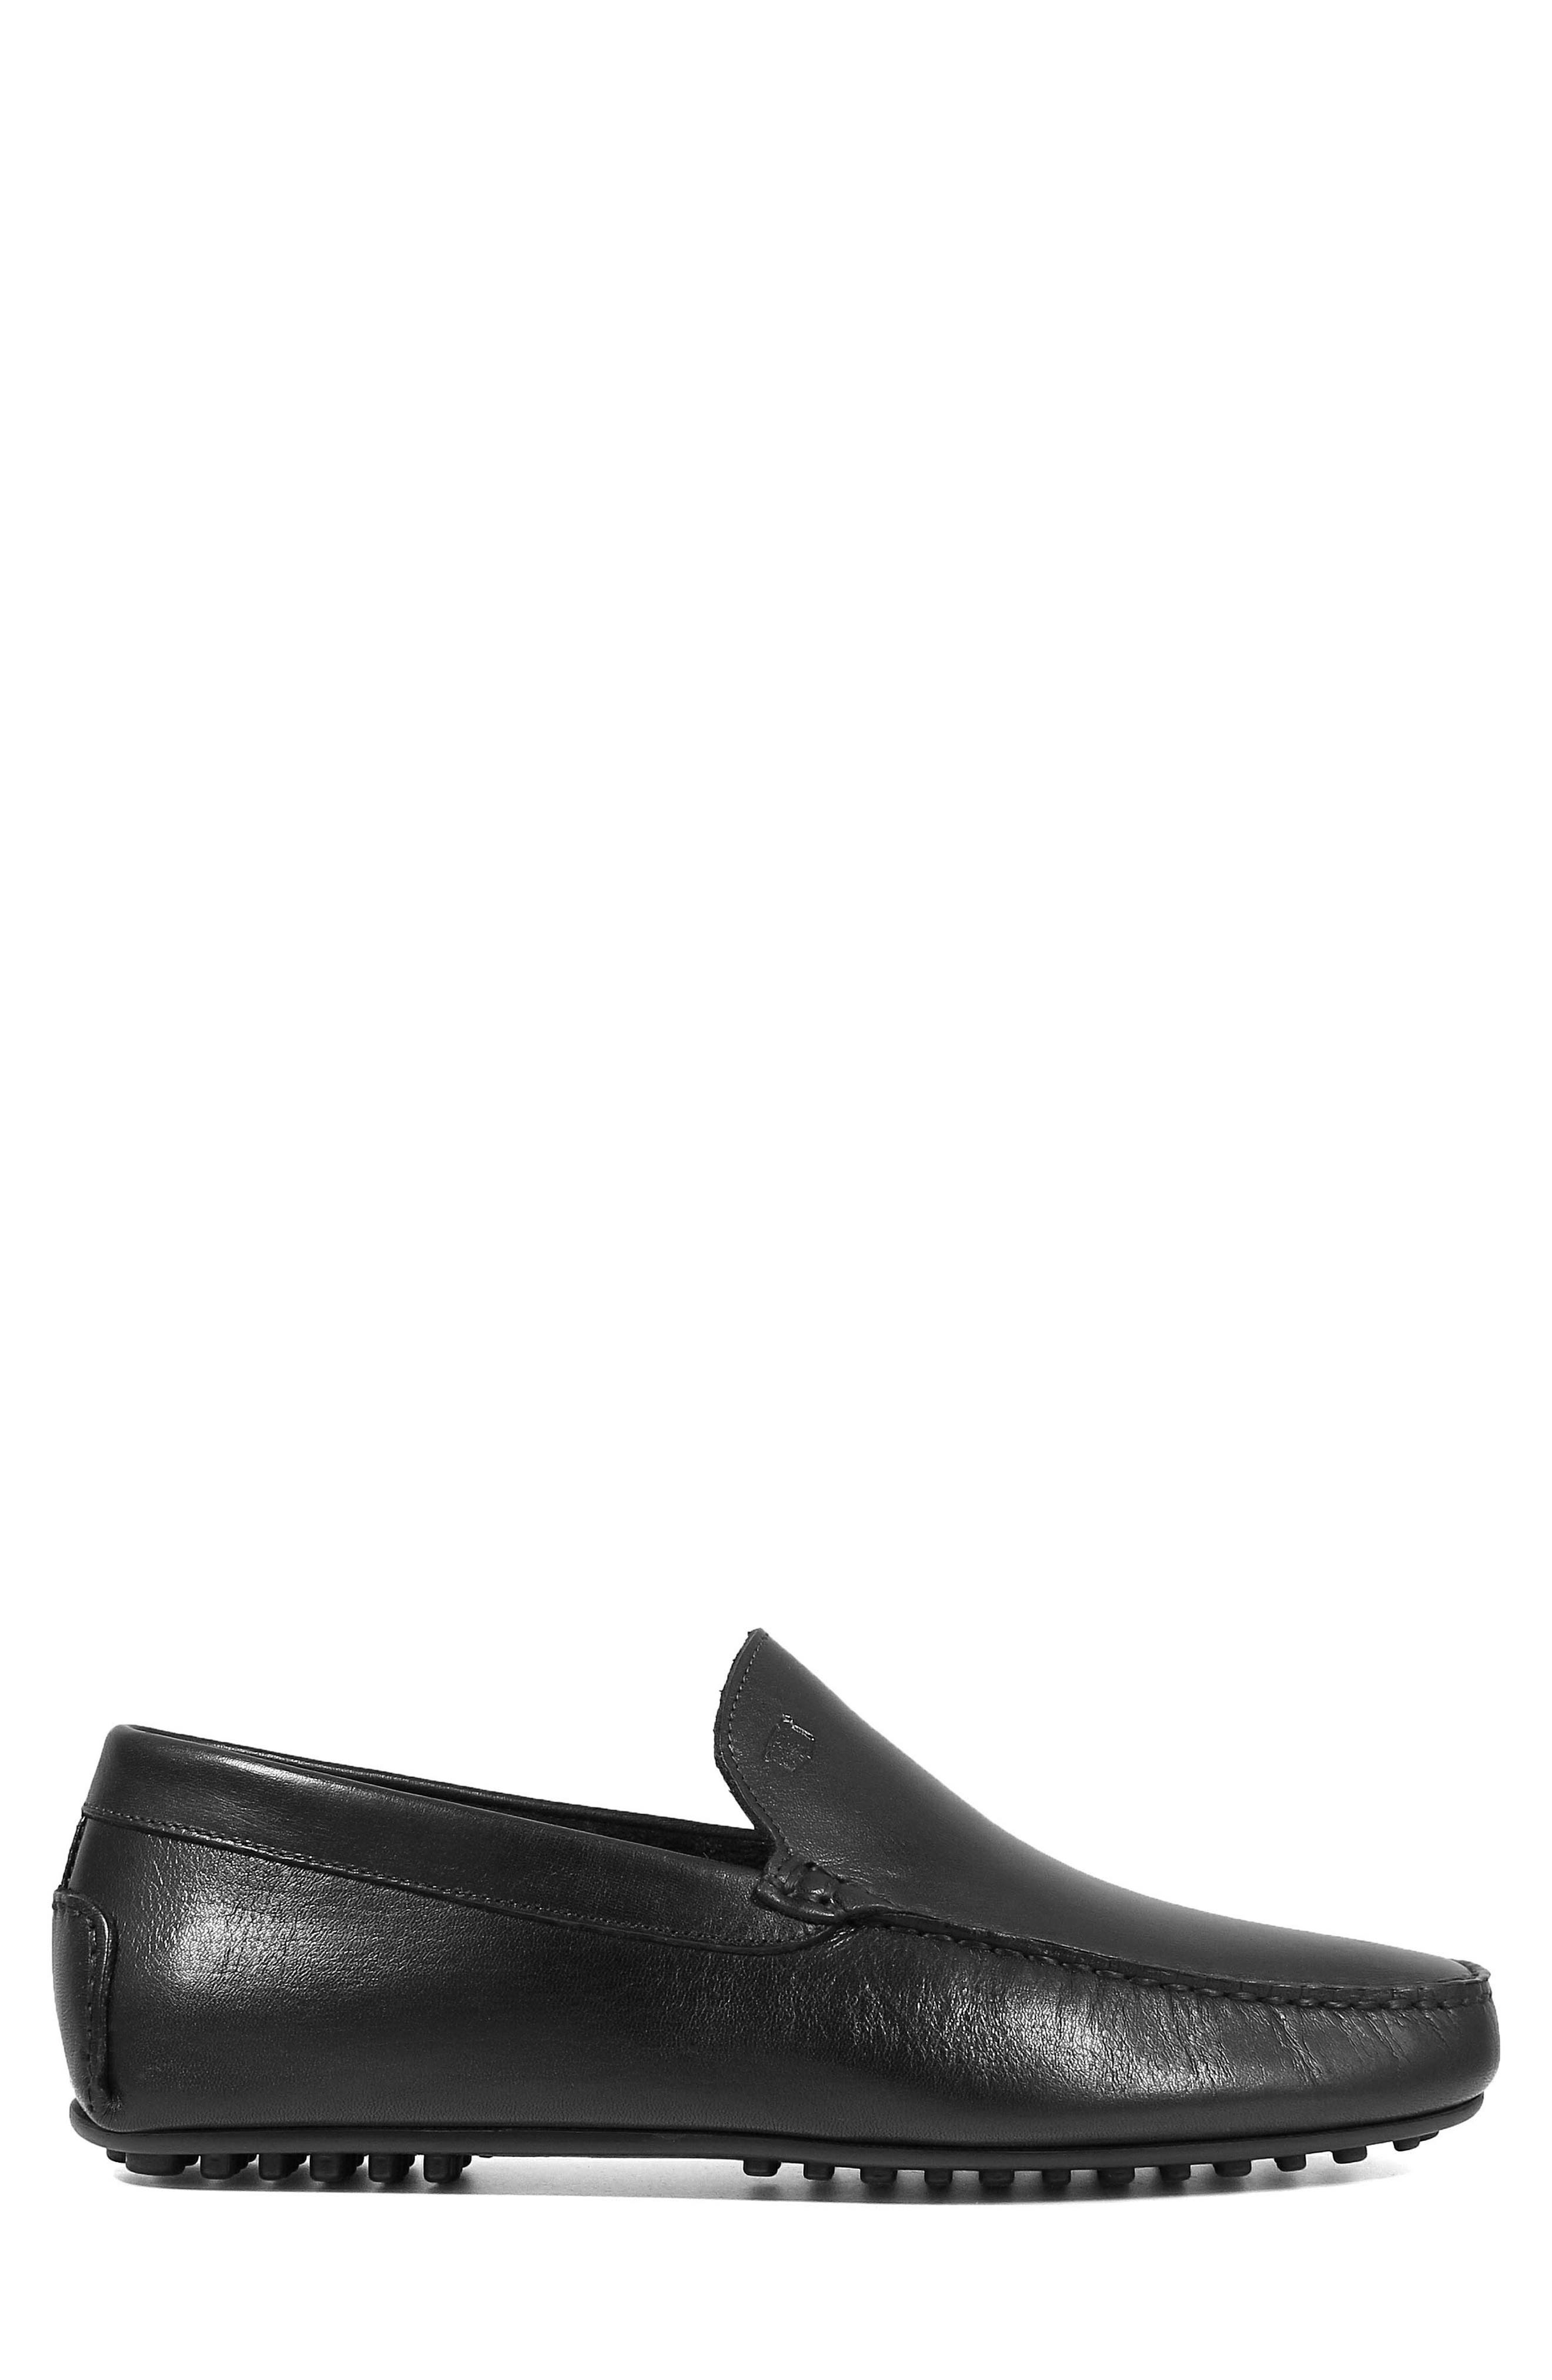 Navono Driving Moccasin,                             Alternate thumbnail 3, color,                             BLACK LEATHER